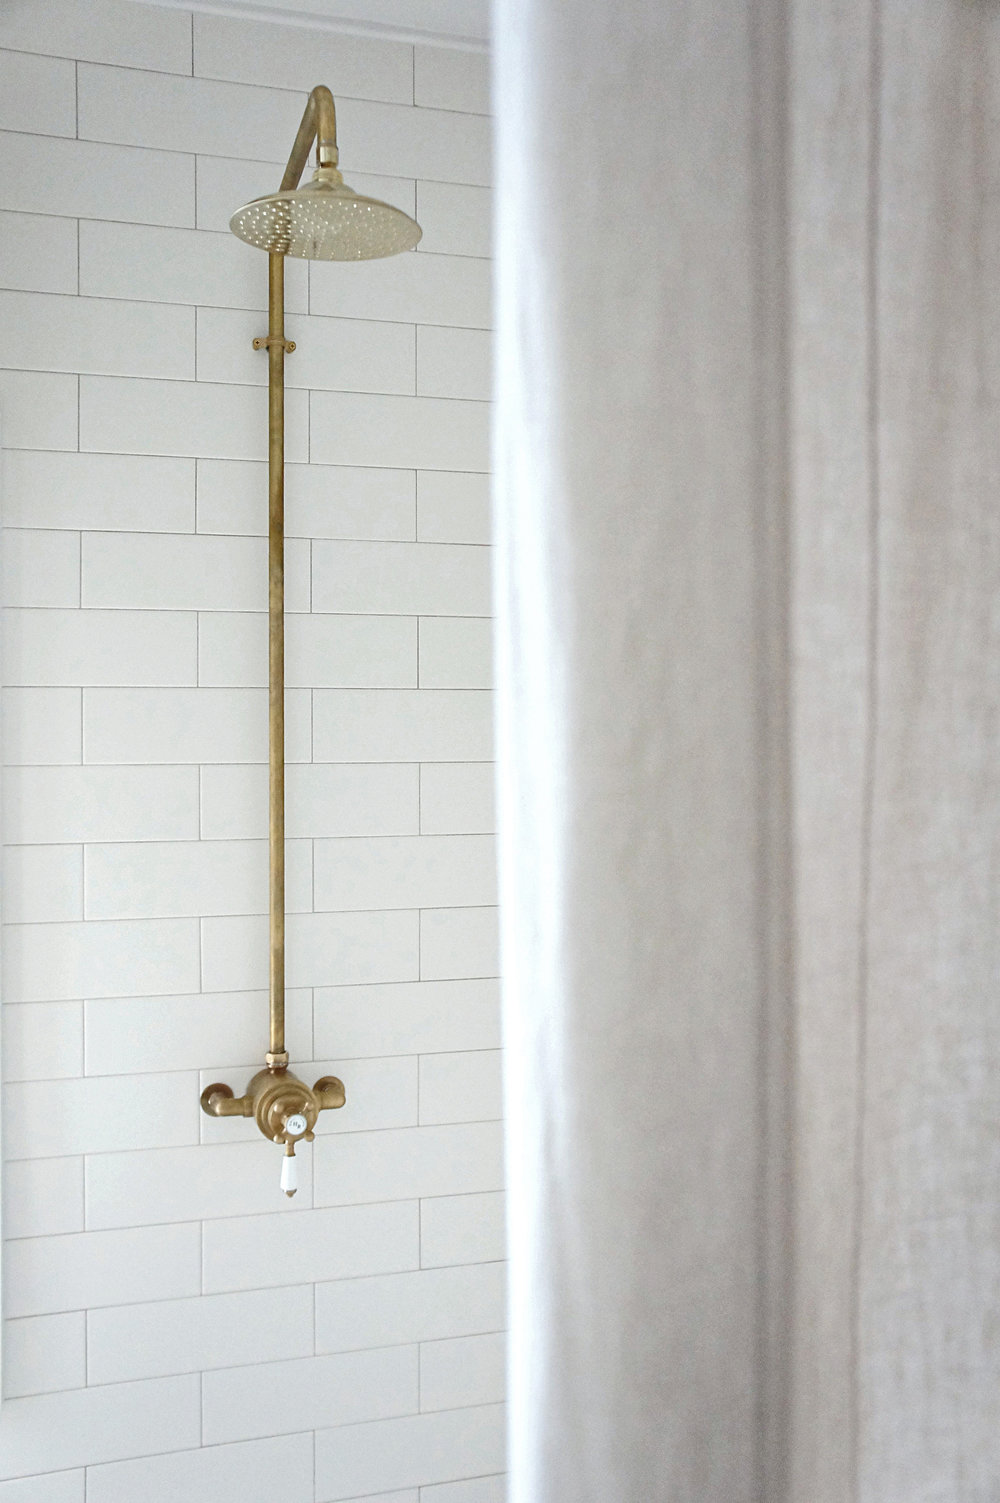 Kaemingk Design Brass Shower